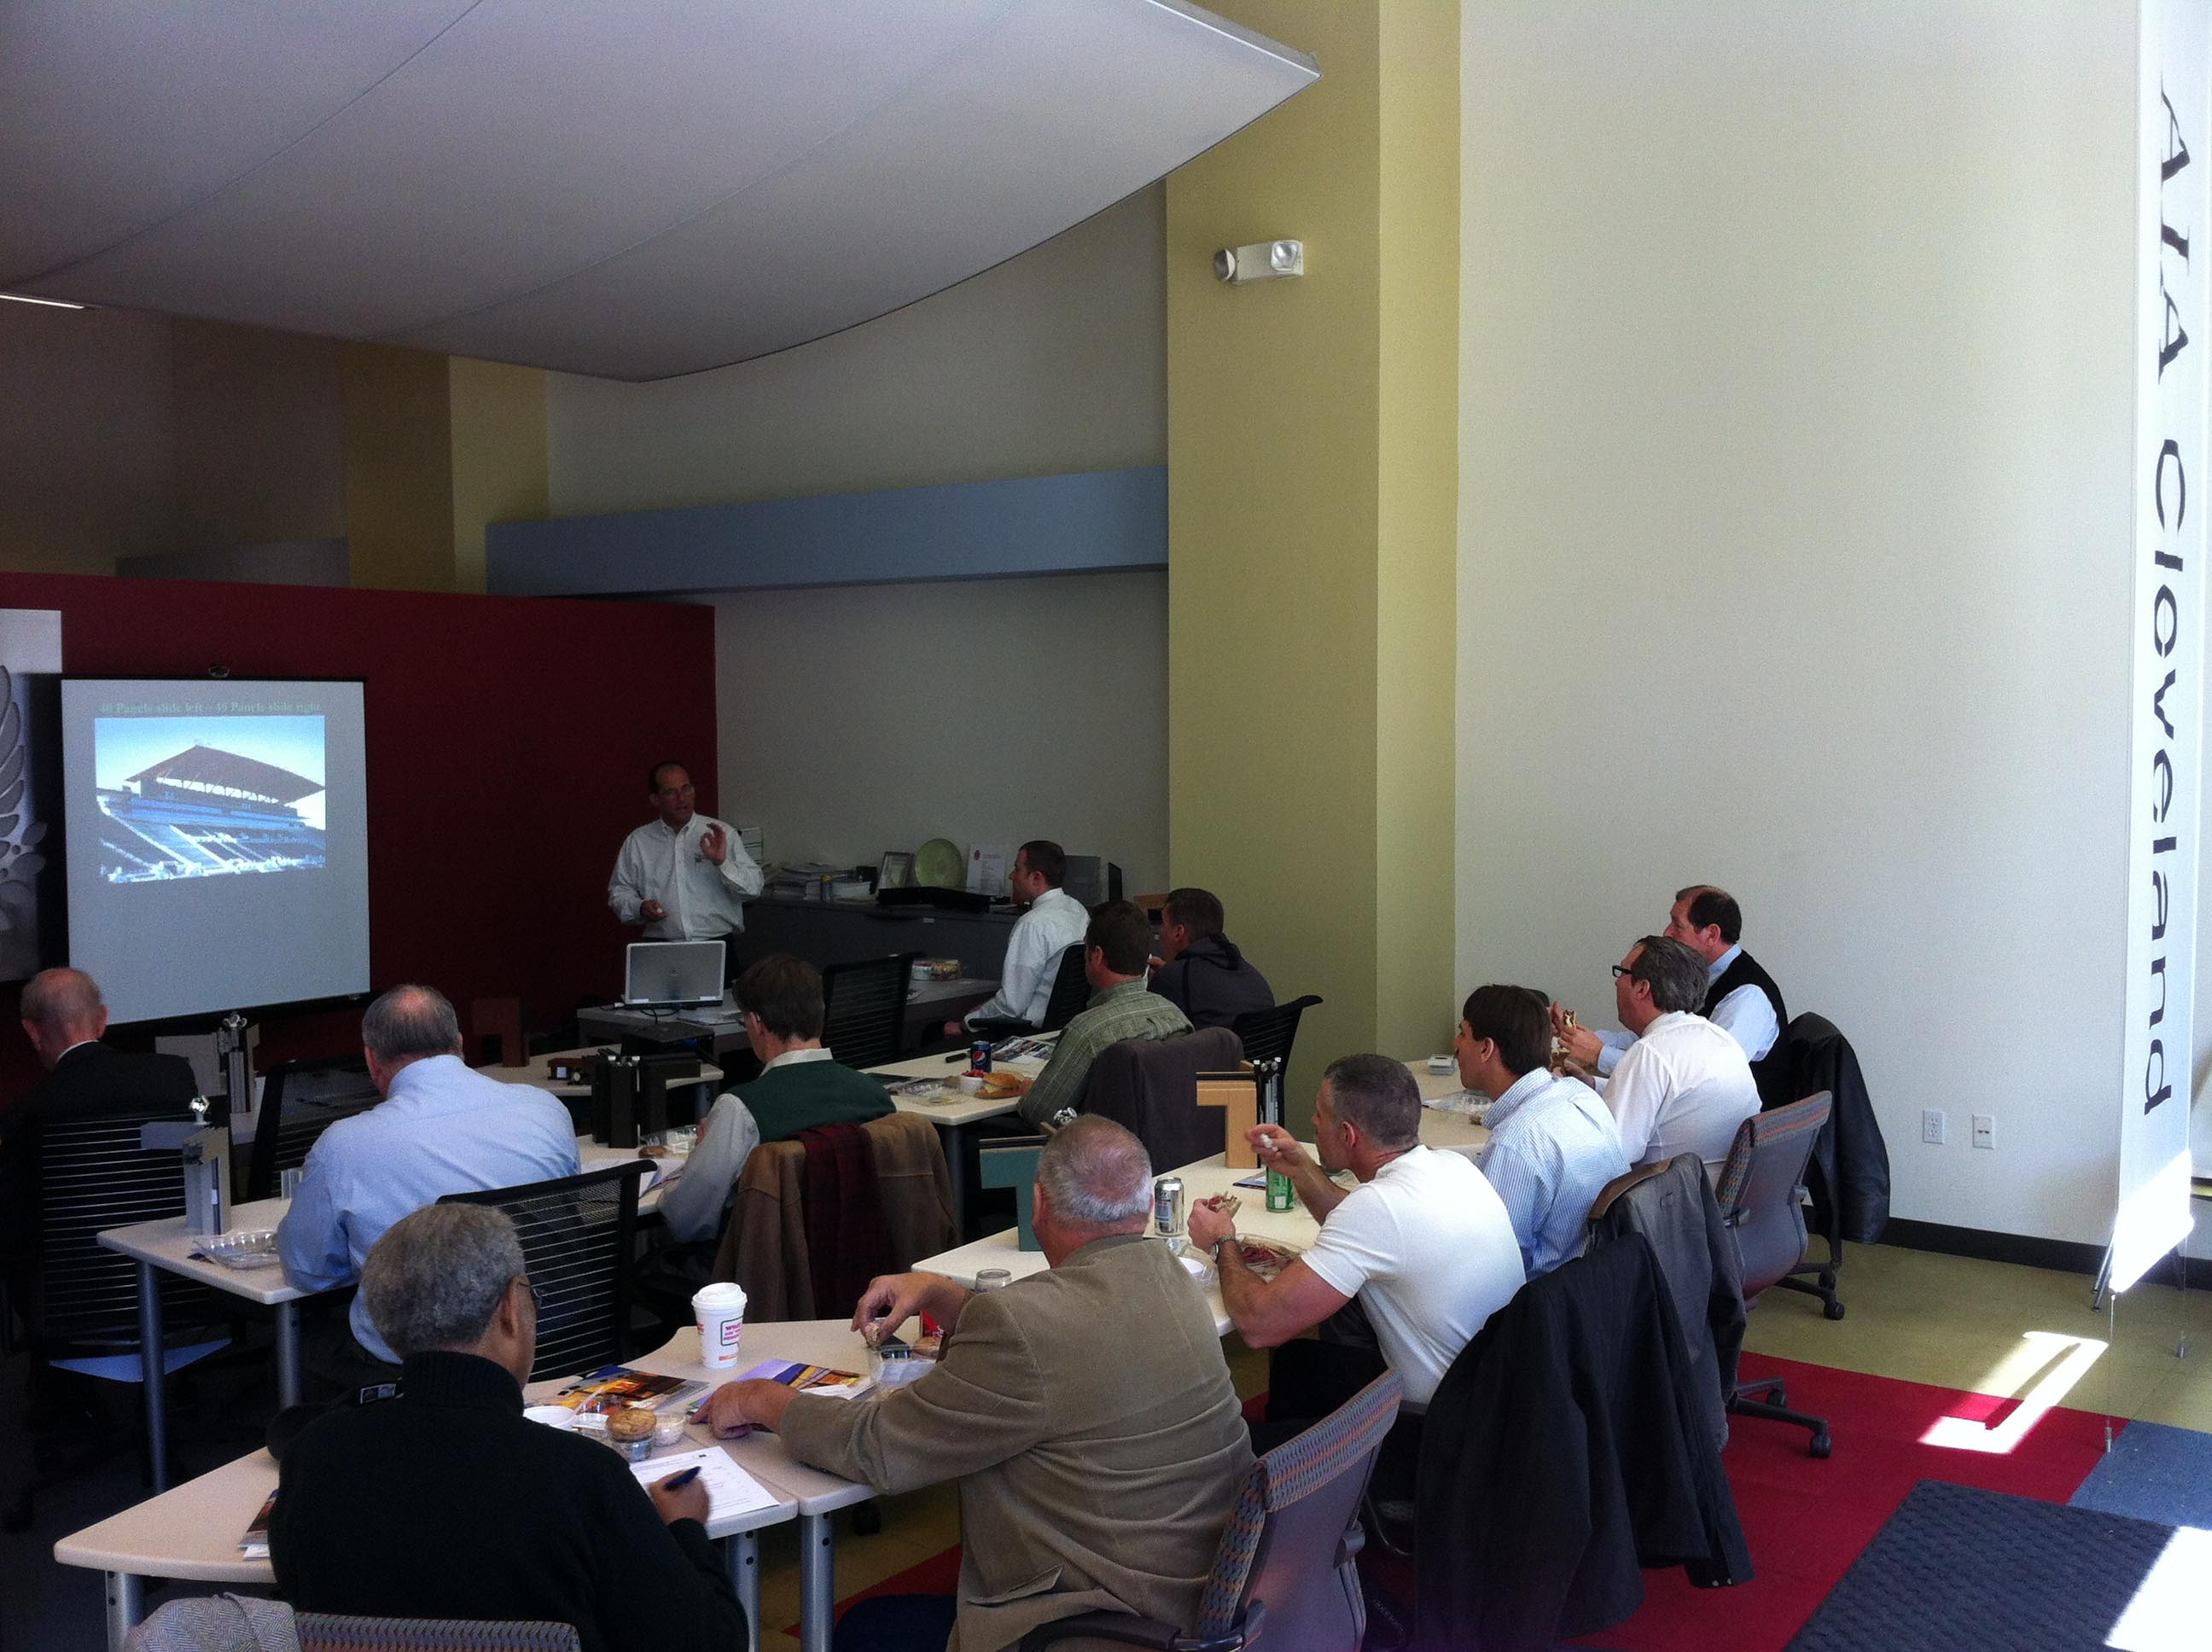 NanaWall offers AIA Lunch and Learn Seminars